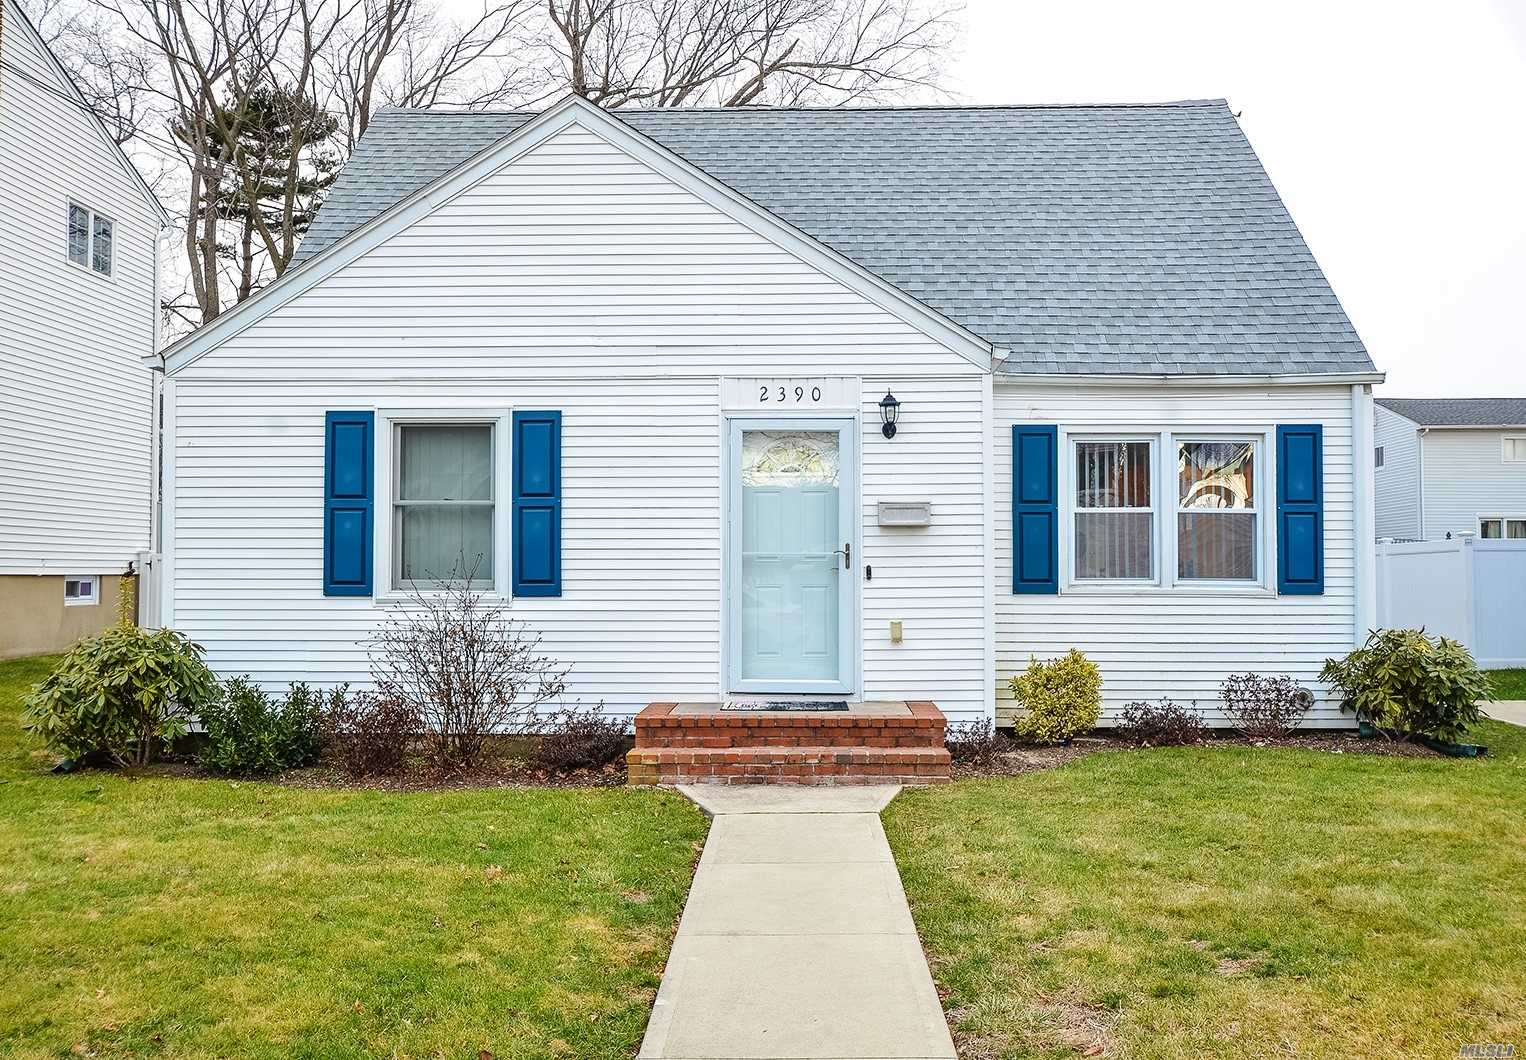 You're Going To Fall In Love With This Recently Updated Perfectly Situated Cape That Is In Close Proximity To The Beach, Parkway, And Shopping. New Updates Include A Washer/Dryer, Gas Boiler, Hardwood Flooring, And Eat In Kitchen With Granite Countertops.